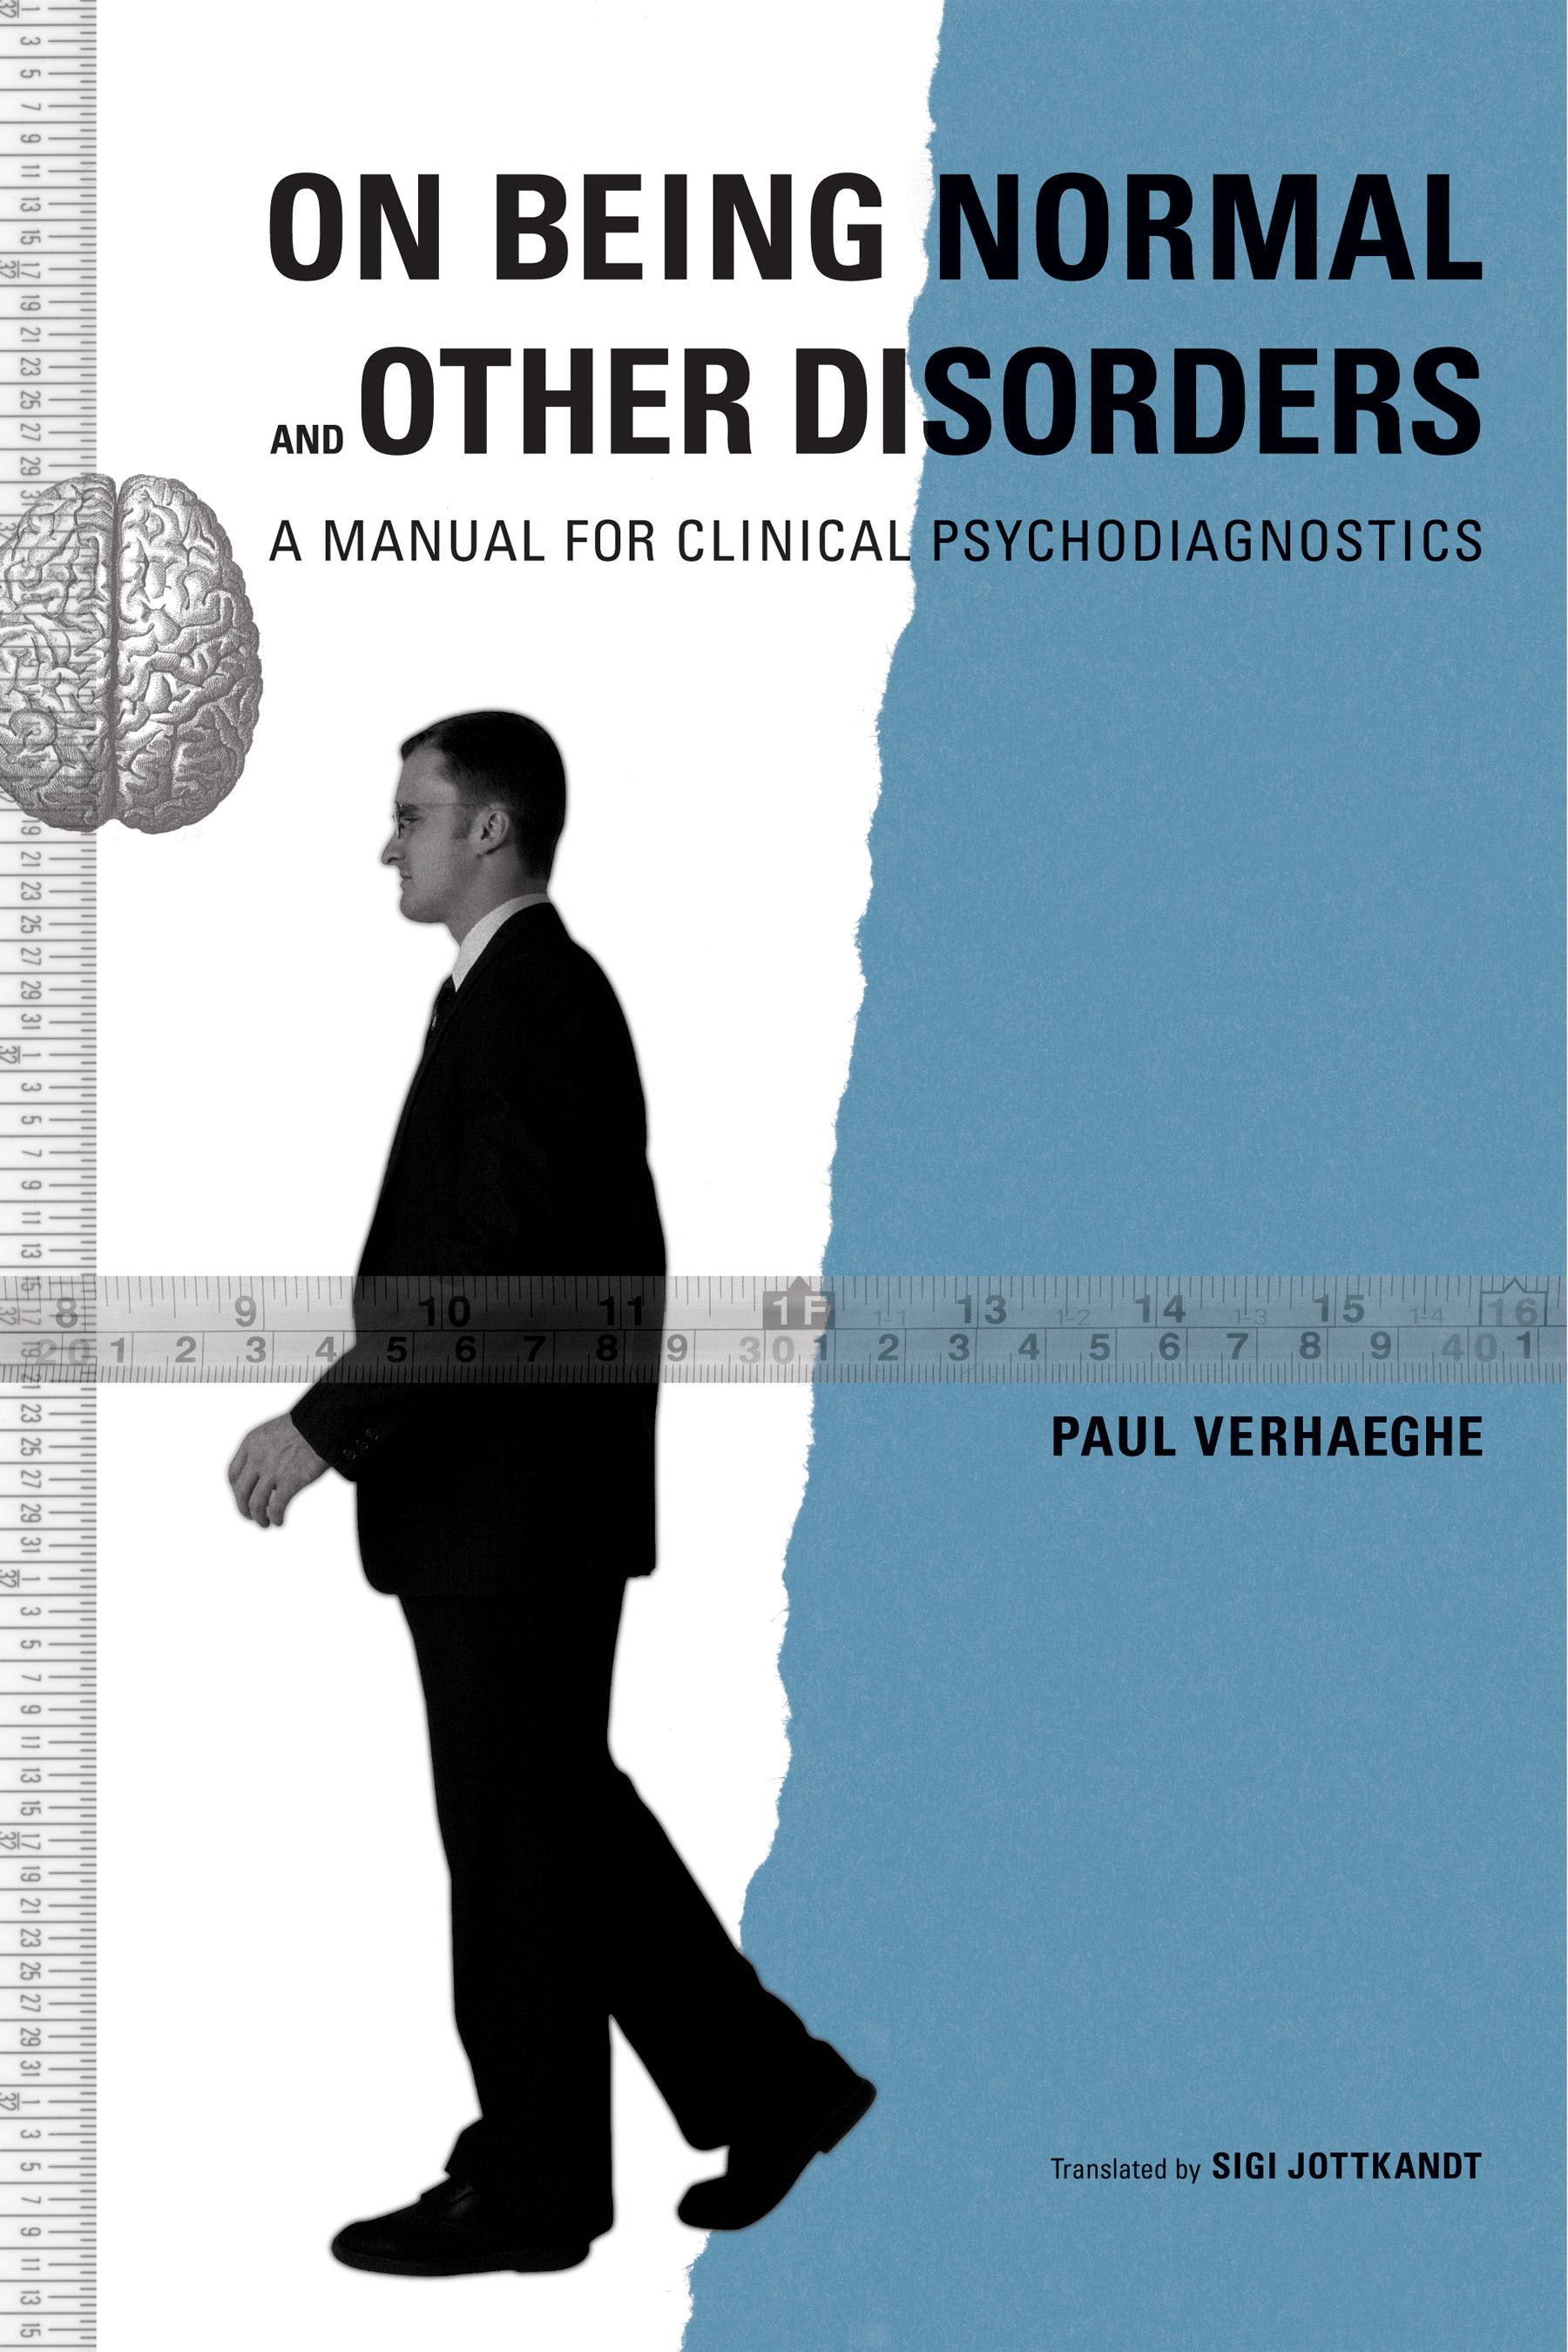 On Being Normal and Other Disorders